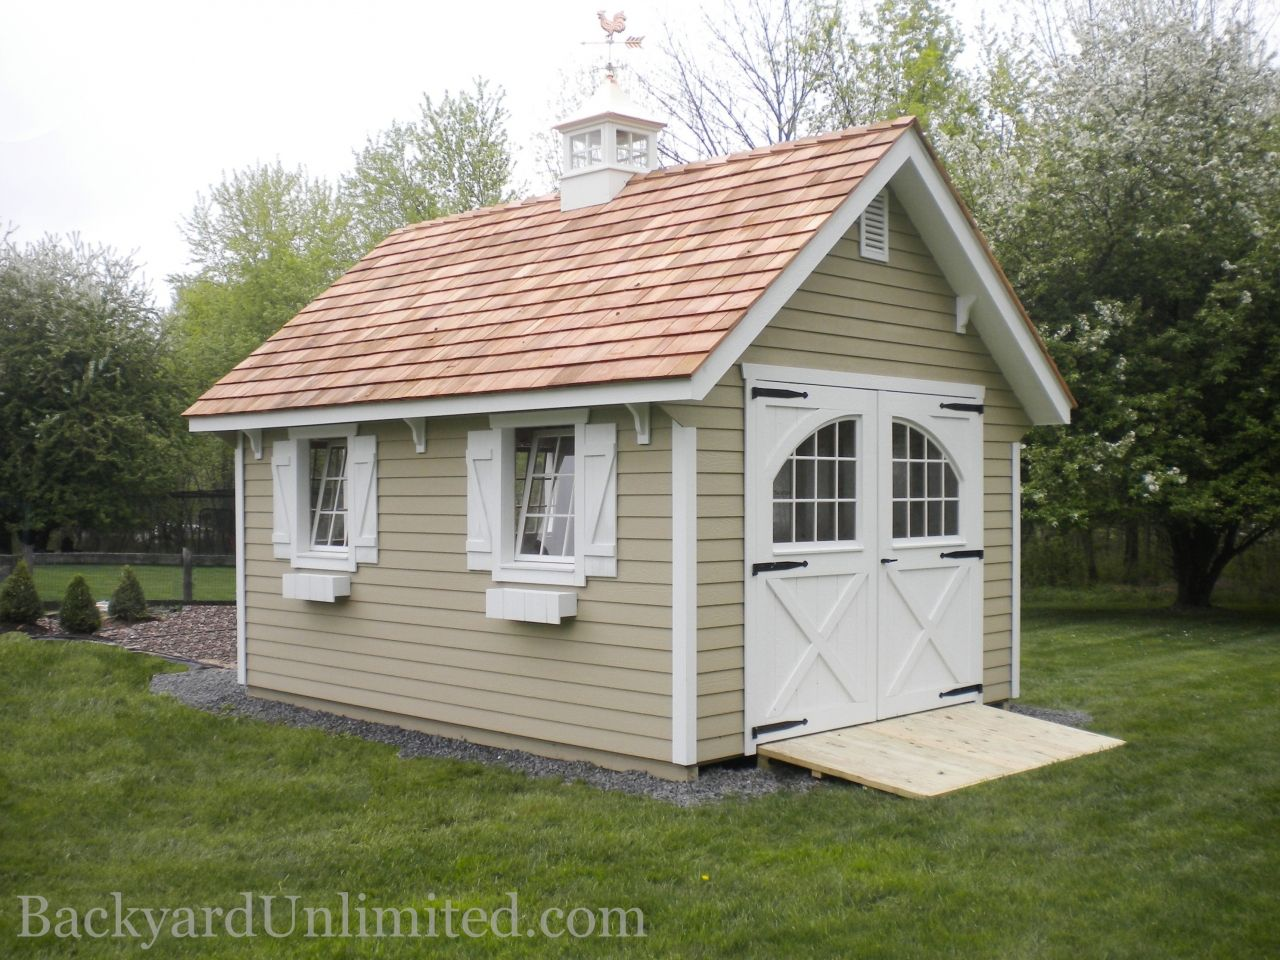 12 X16 Craftsman Shed With Lap Siding Carriage House Doors With Pinion Hinges 9 Lite Wood Windows Shutters Flower Backyard Structures Shed Craftsman Sheds